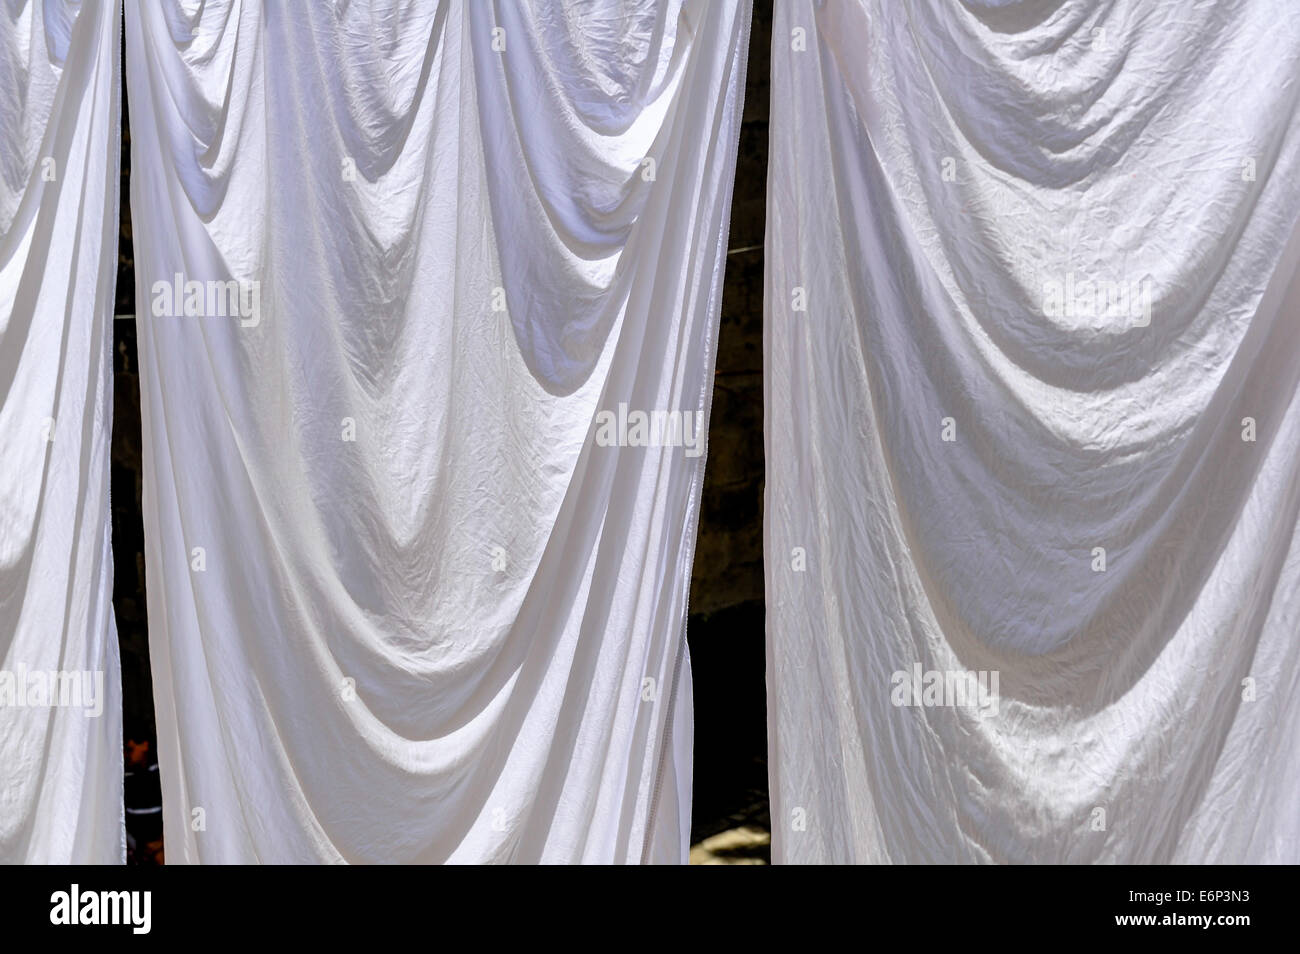 White bedding sheets hanging to dry on a washing line stock photo royalty free image 73015295 - Wash white sheets keep fresh ...